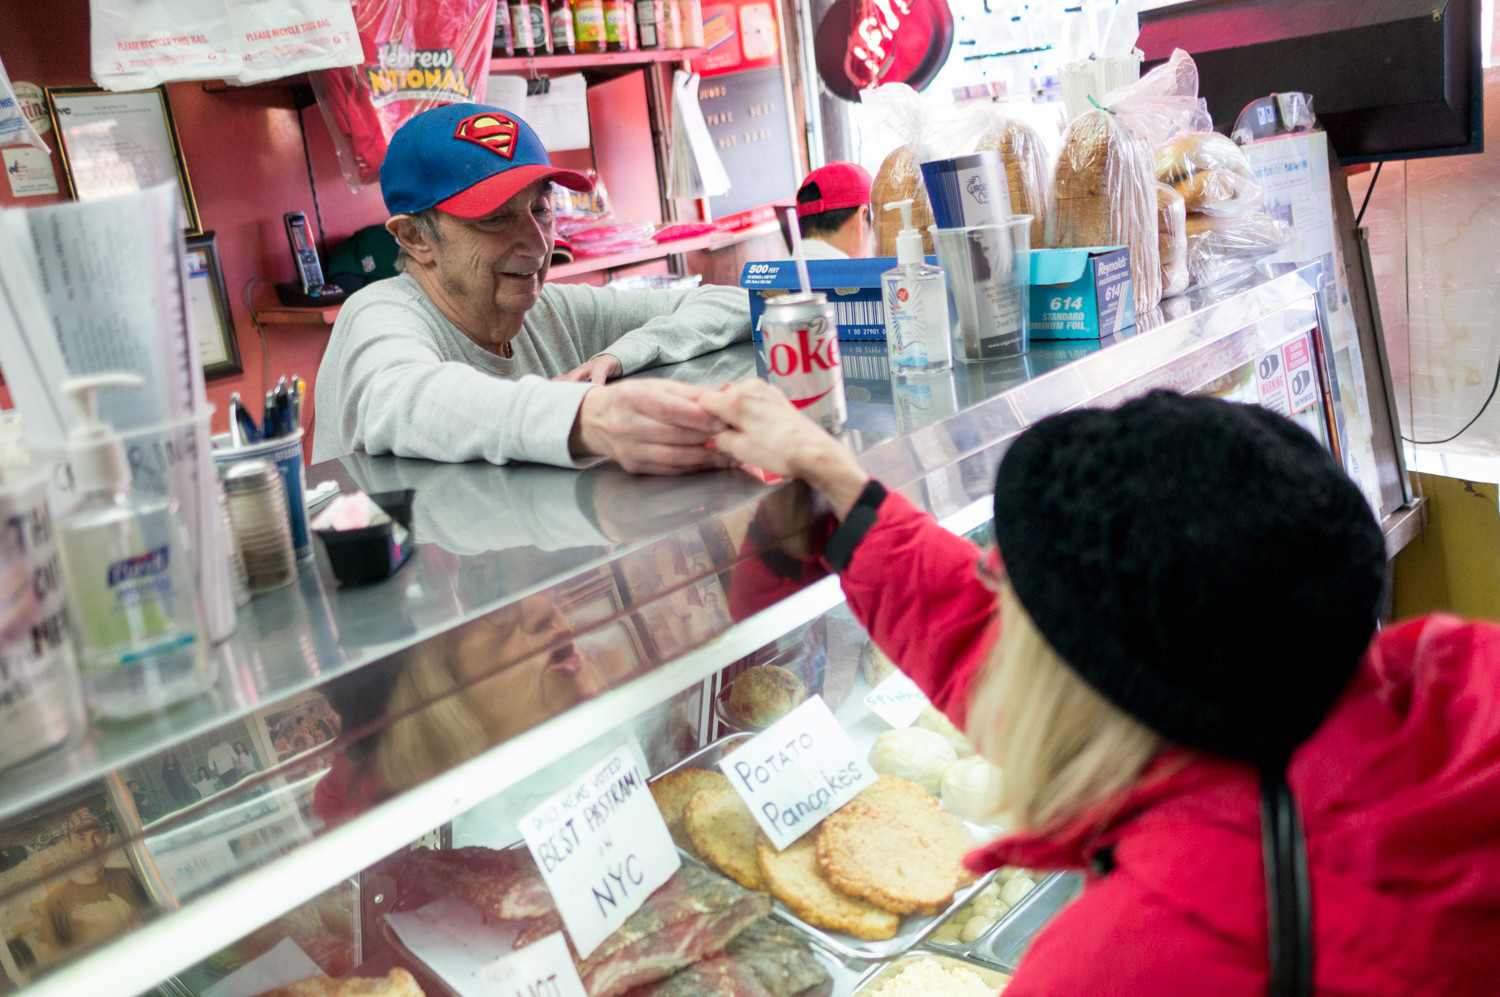 Fredy Loeser shakes a customer's hand at his well-established deli, located off bustling Broadway at 214 W. 231st St. Pamela Halpern, Loeser's daughter, has launched an online petition and has approached Community Board 8 to have a sign on the north side of West 231st honoring the deli.